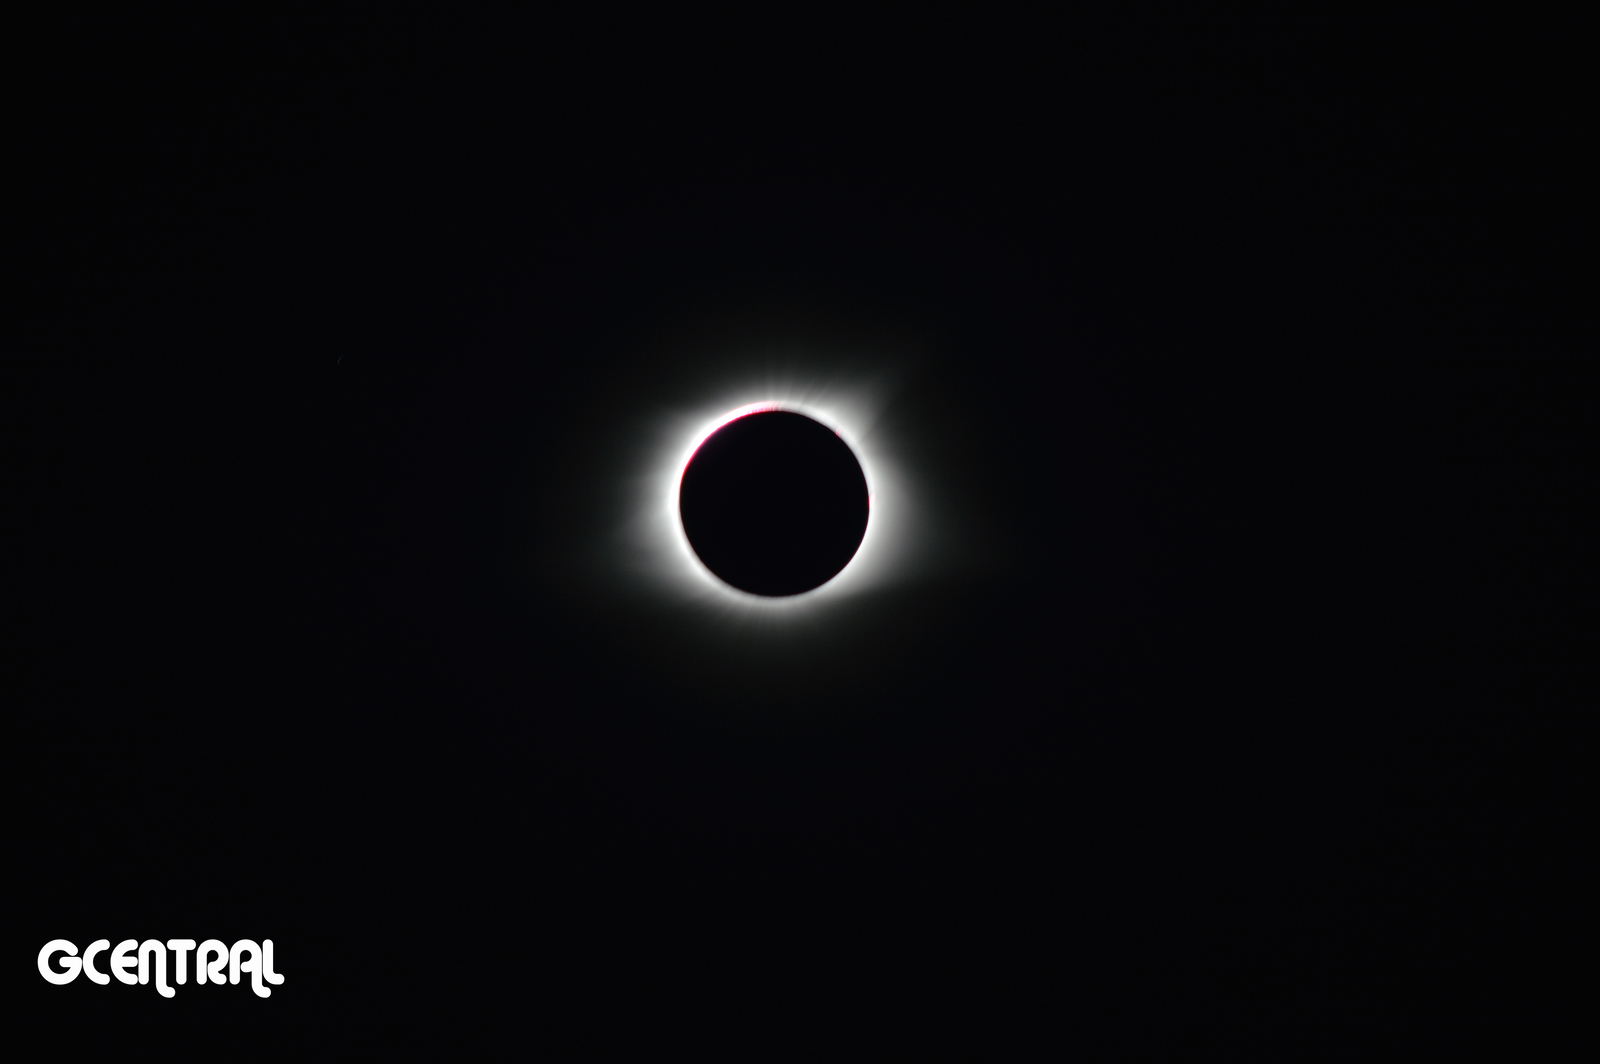 Solar Eclipse August 21, 2017 A